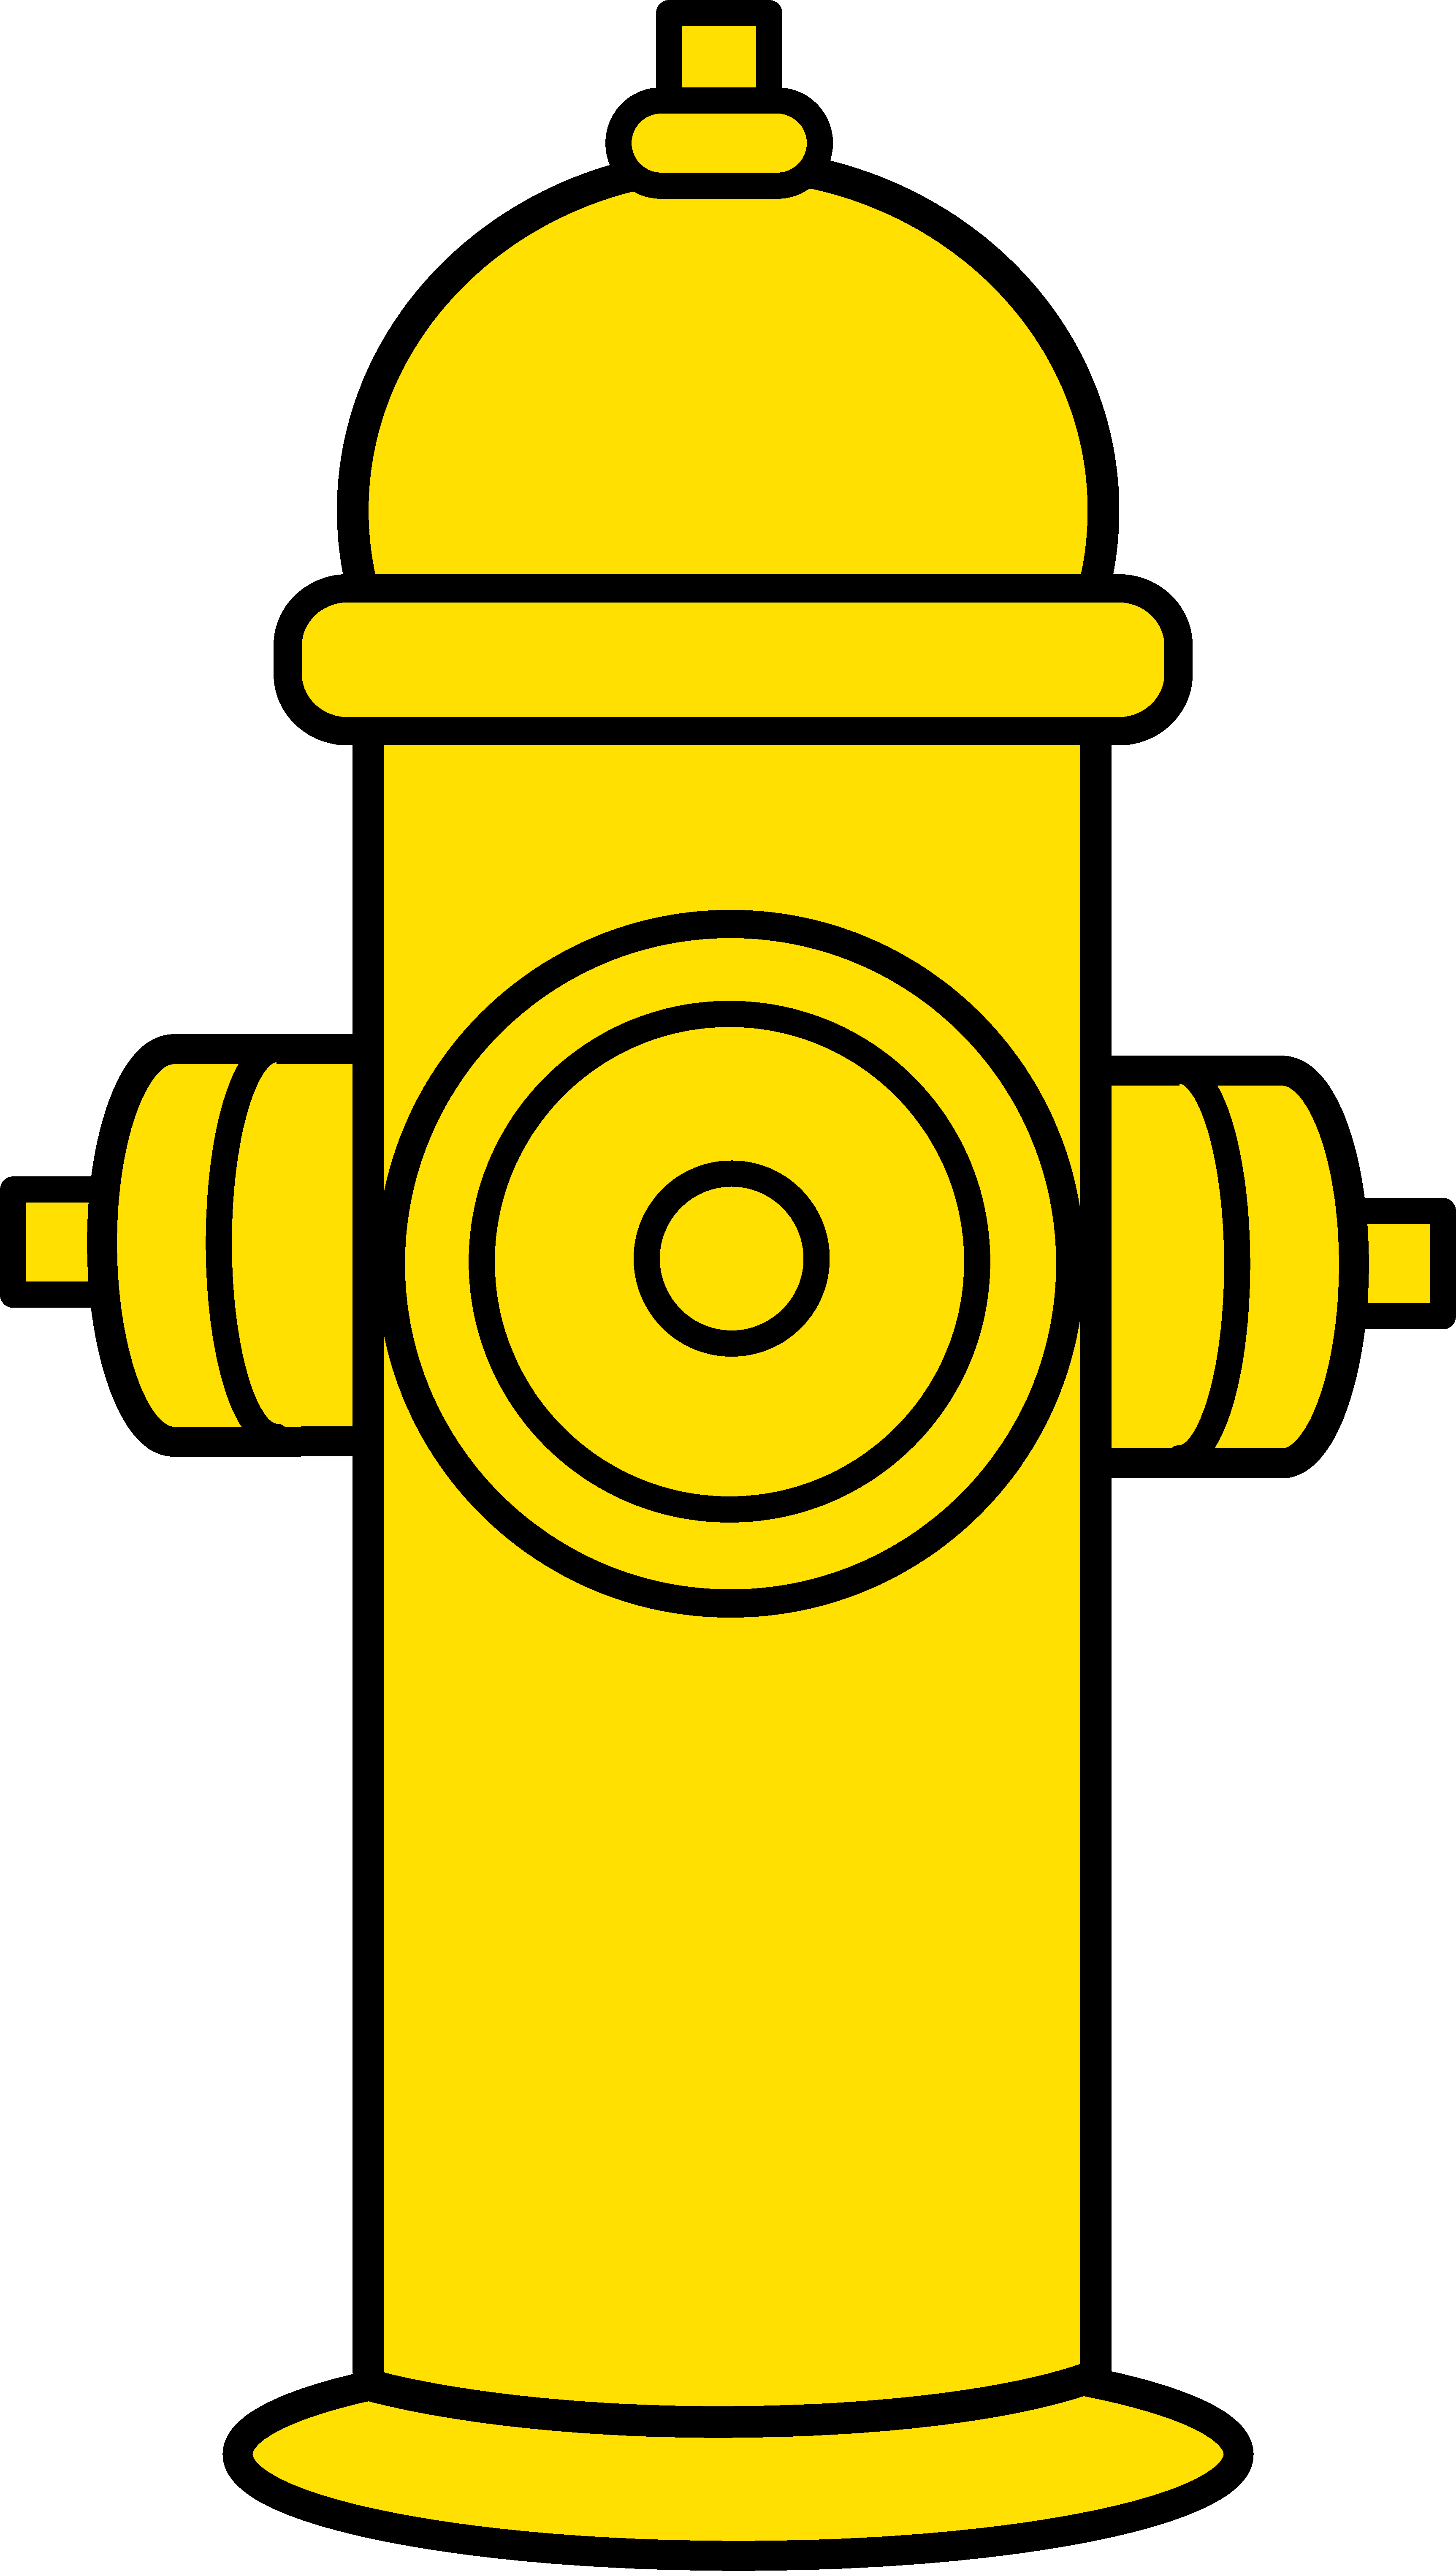 Yellow Fire Hydrant Clipart.